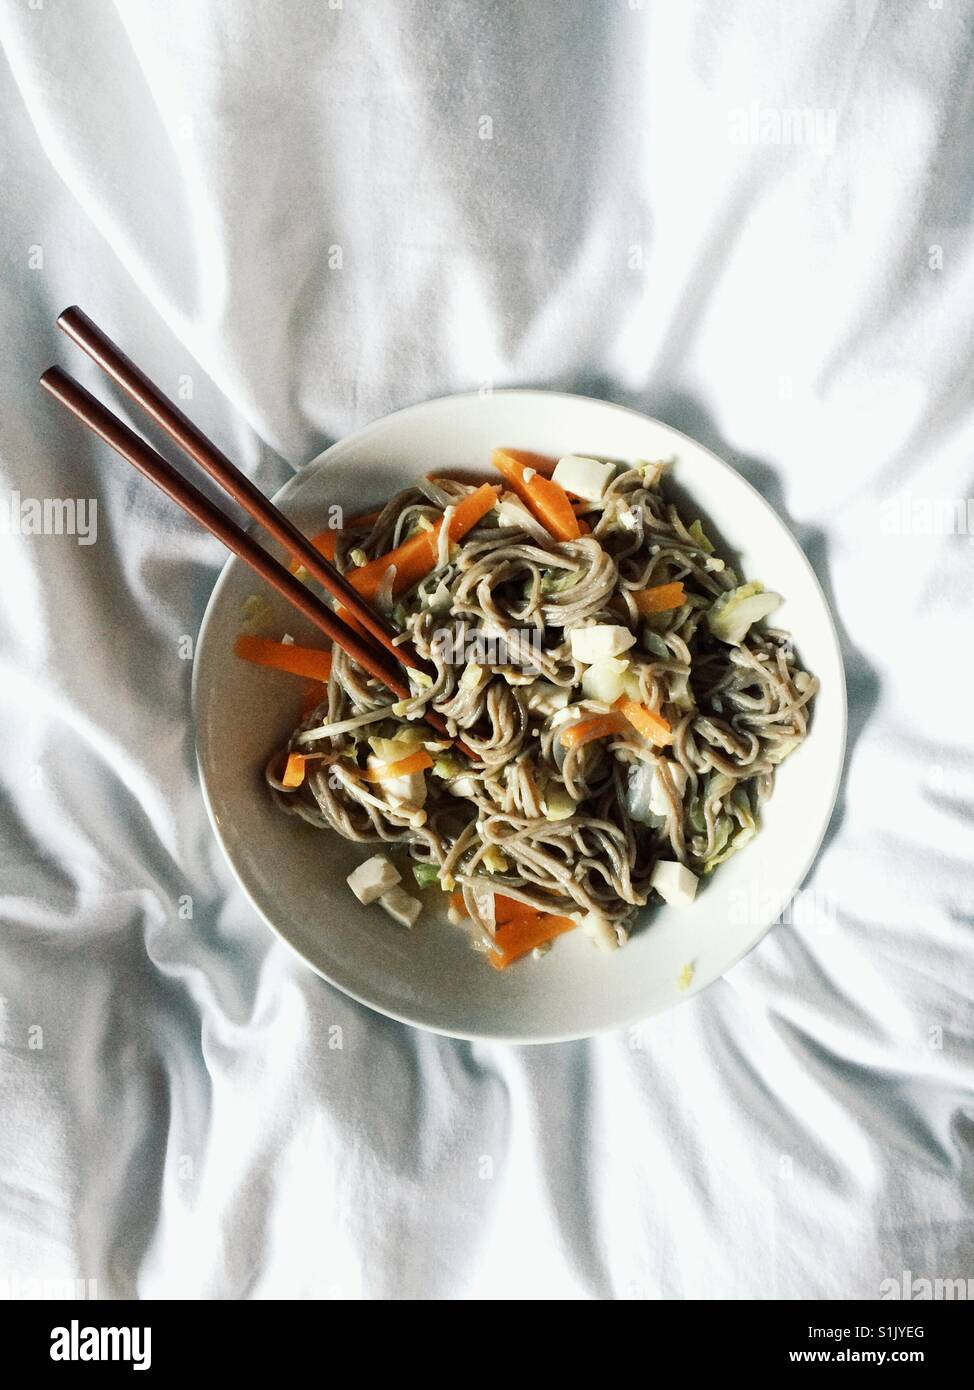 Round white bowl with soba noodles and vegetables with chopsticks on white crumpled bedding - Stock Image